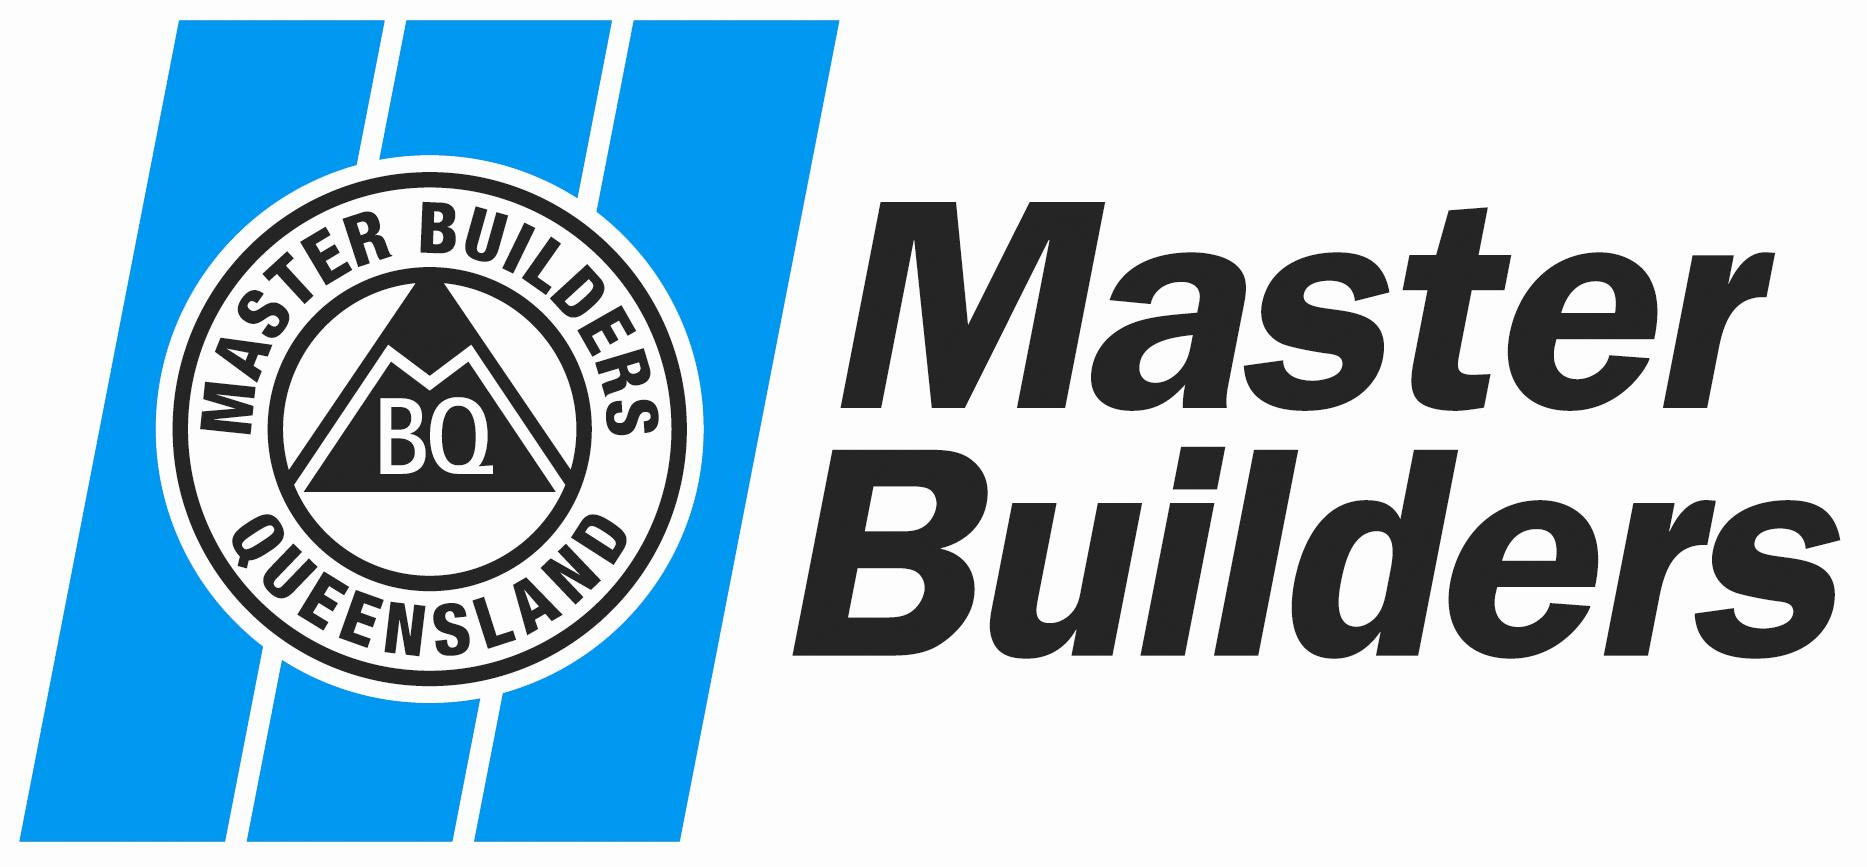 Master Builder since 2001 Registered Builder since 1983